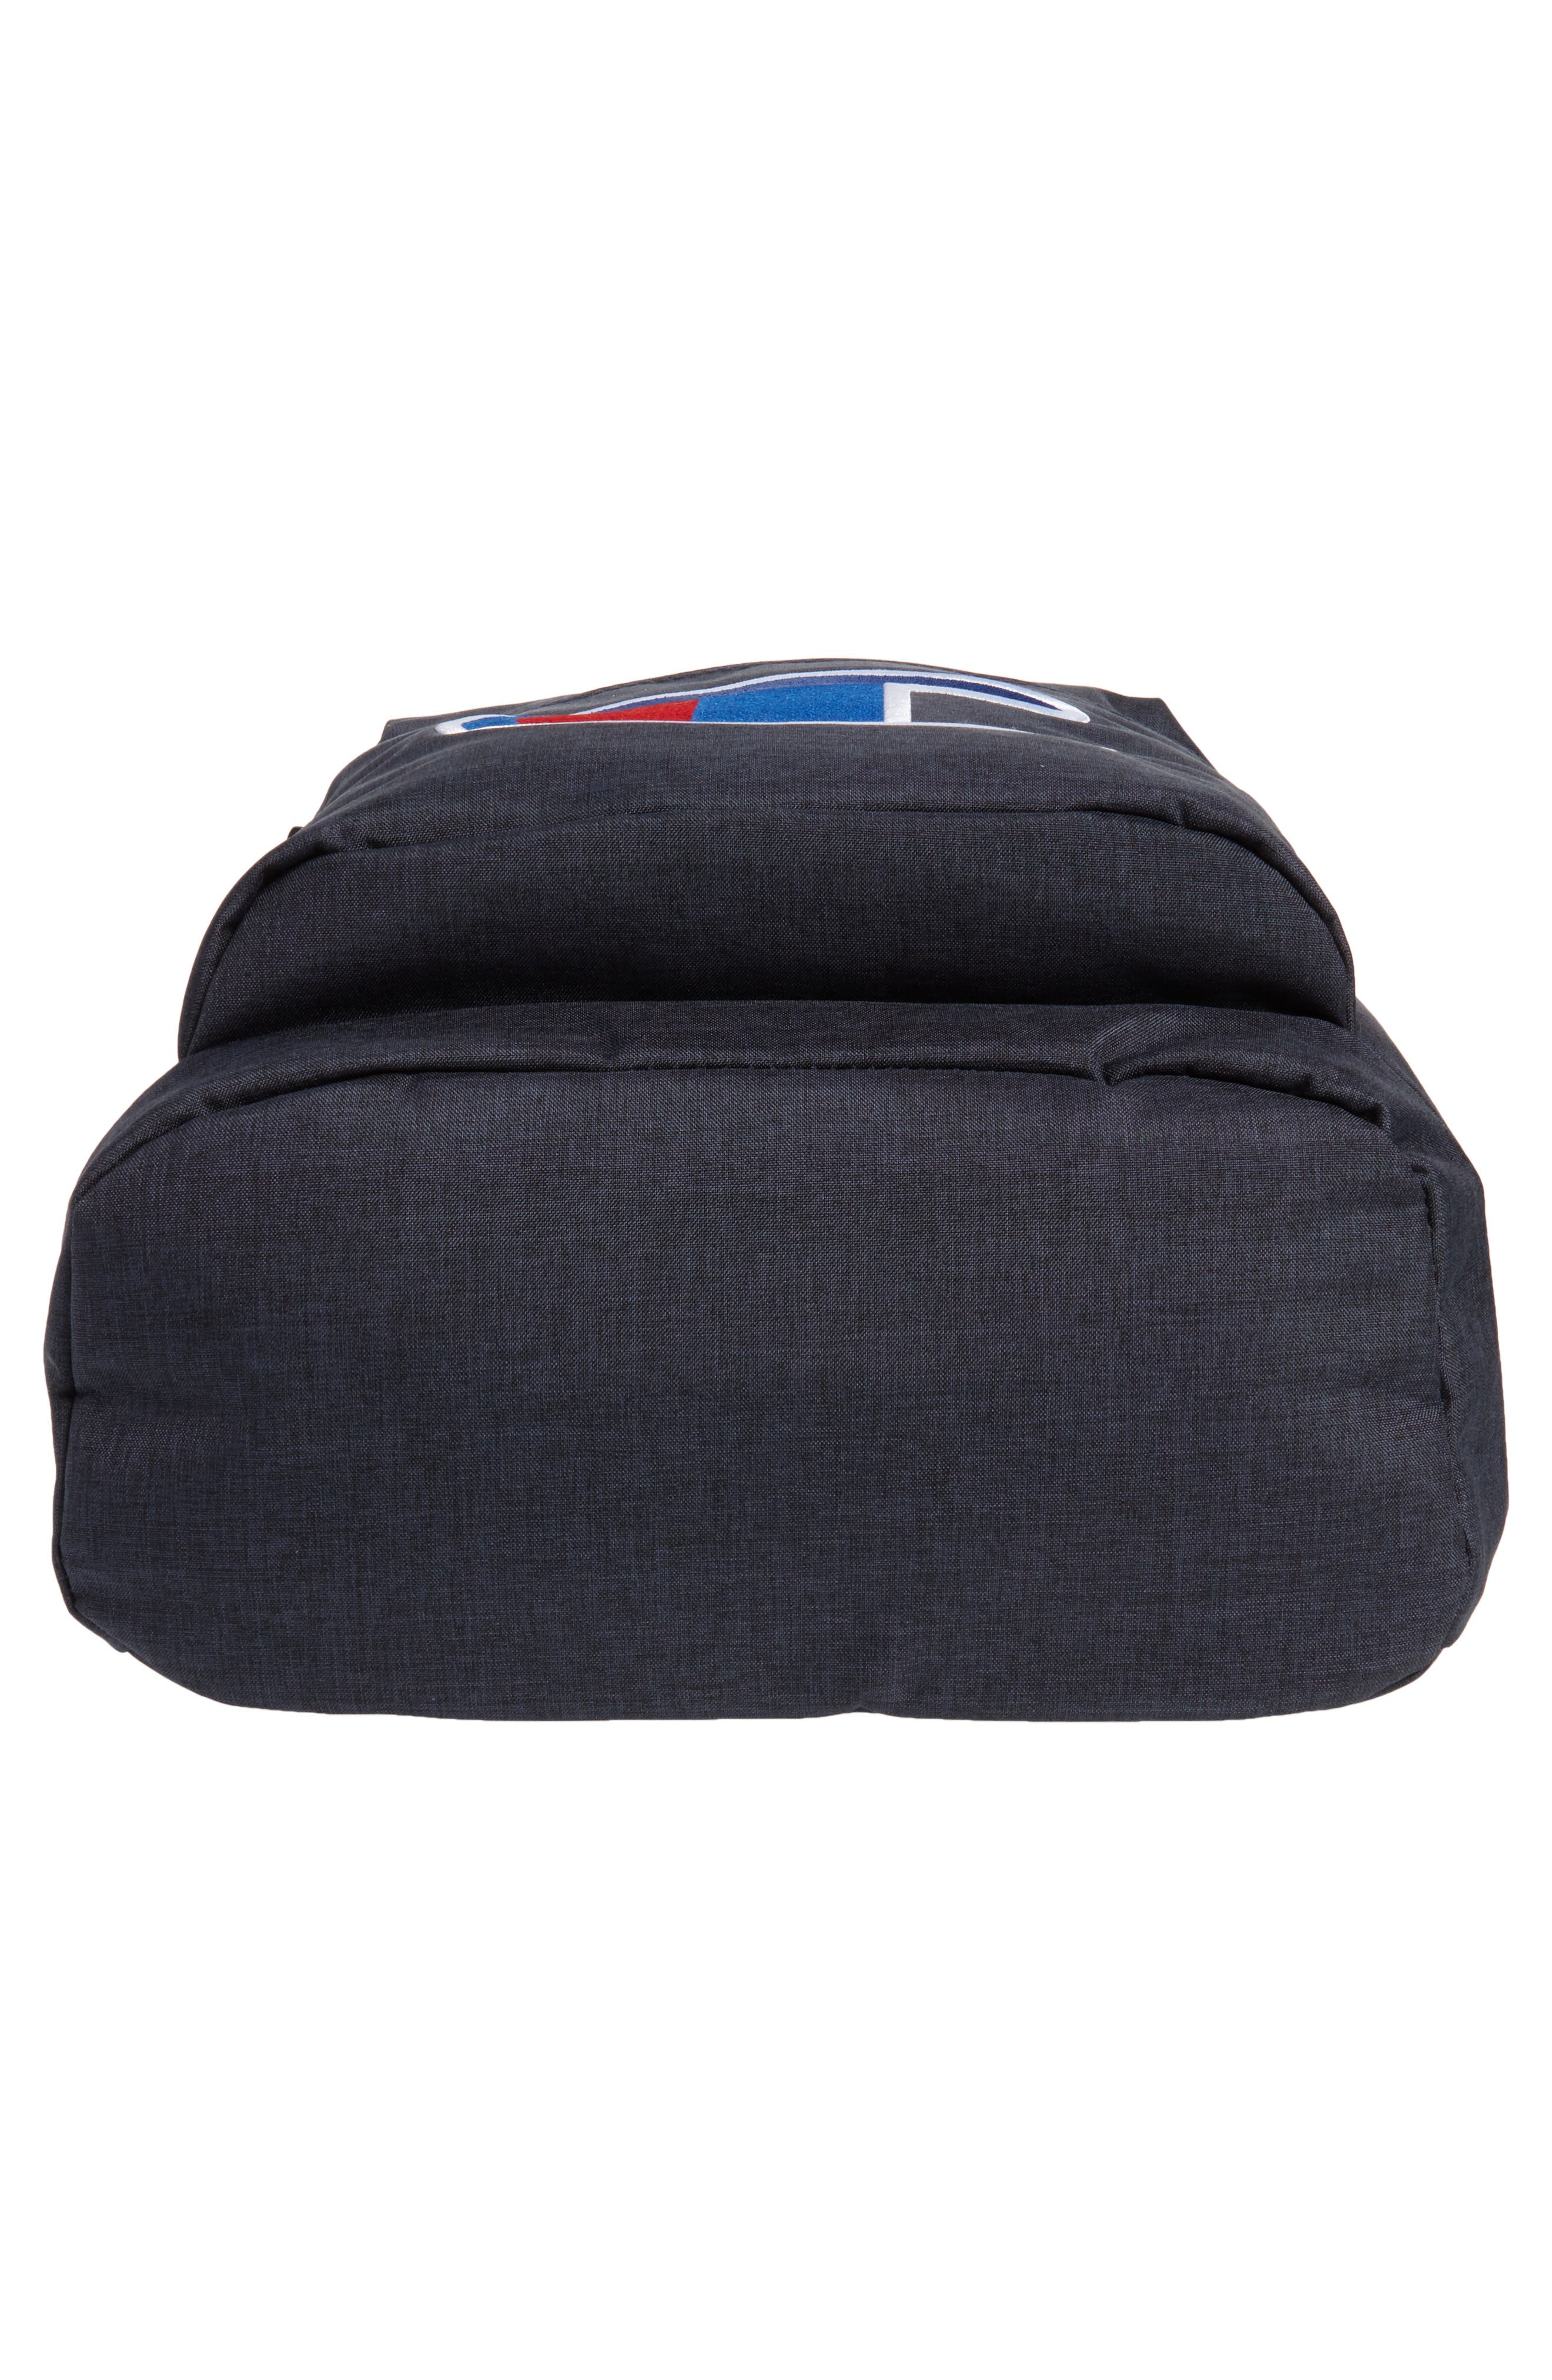 Supercize Backpack,                             Alternate thumbnail 6, color,                             Navy Heather